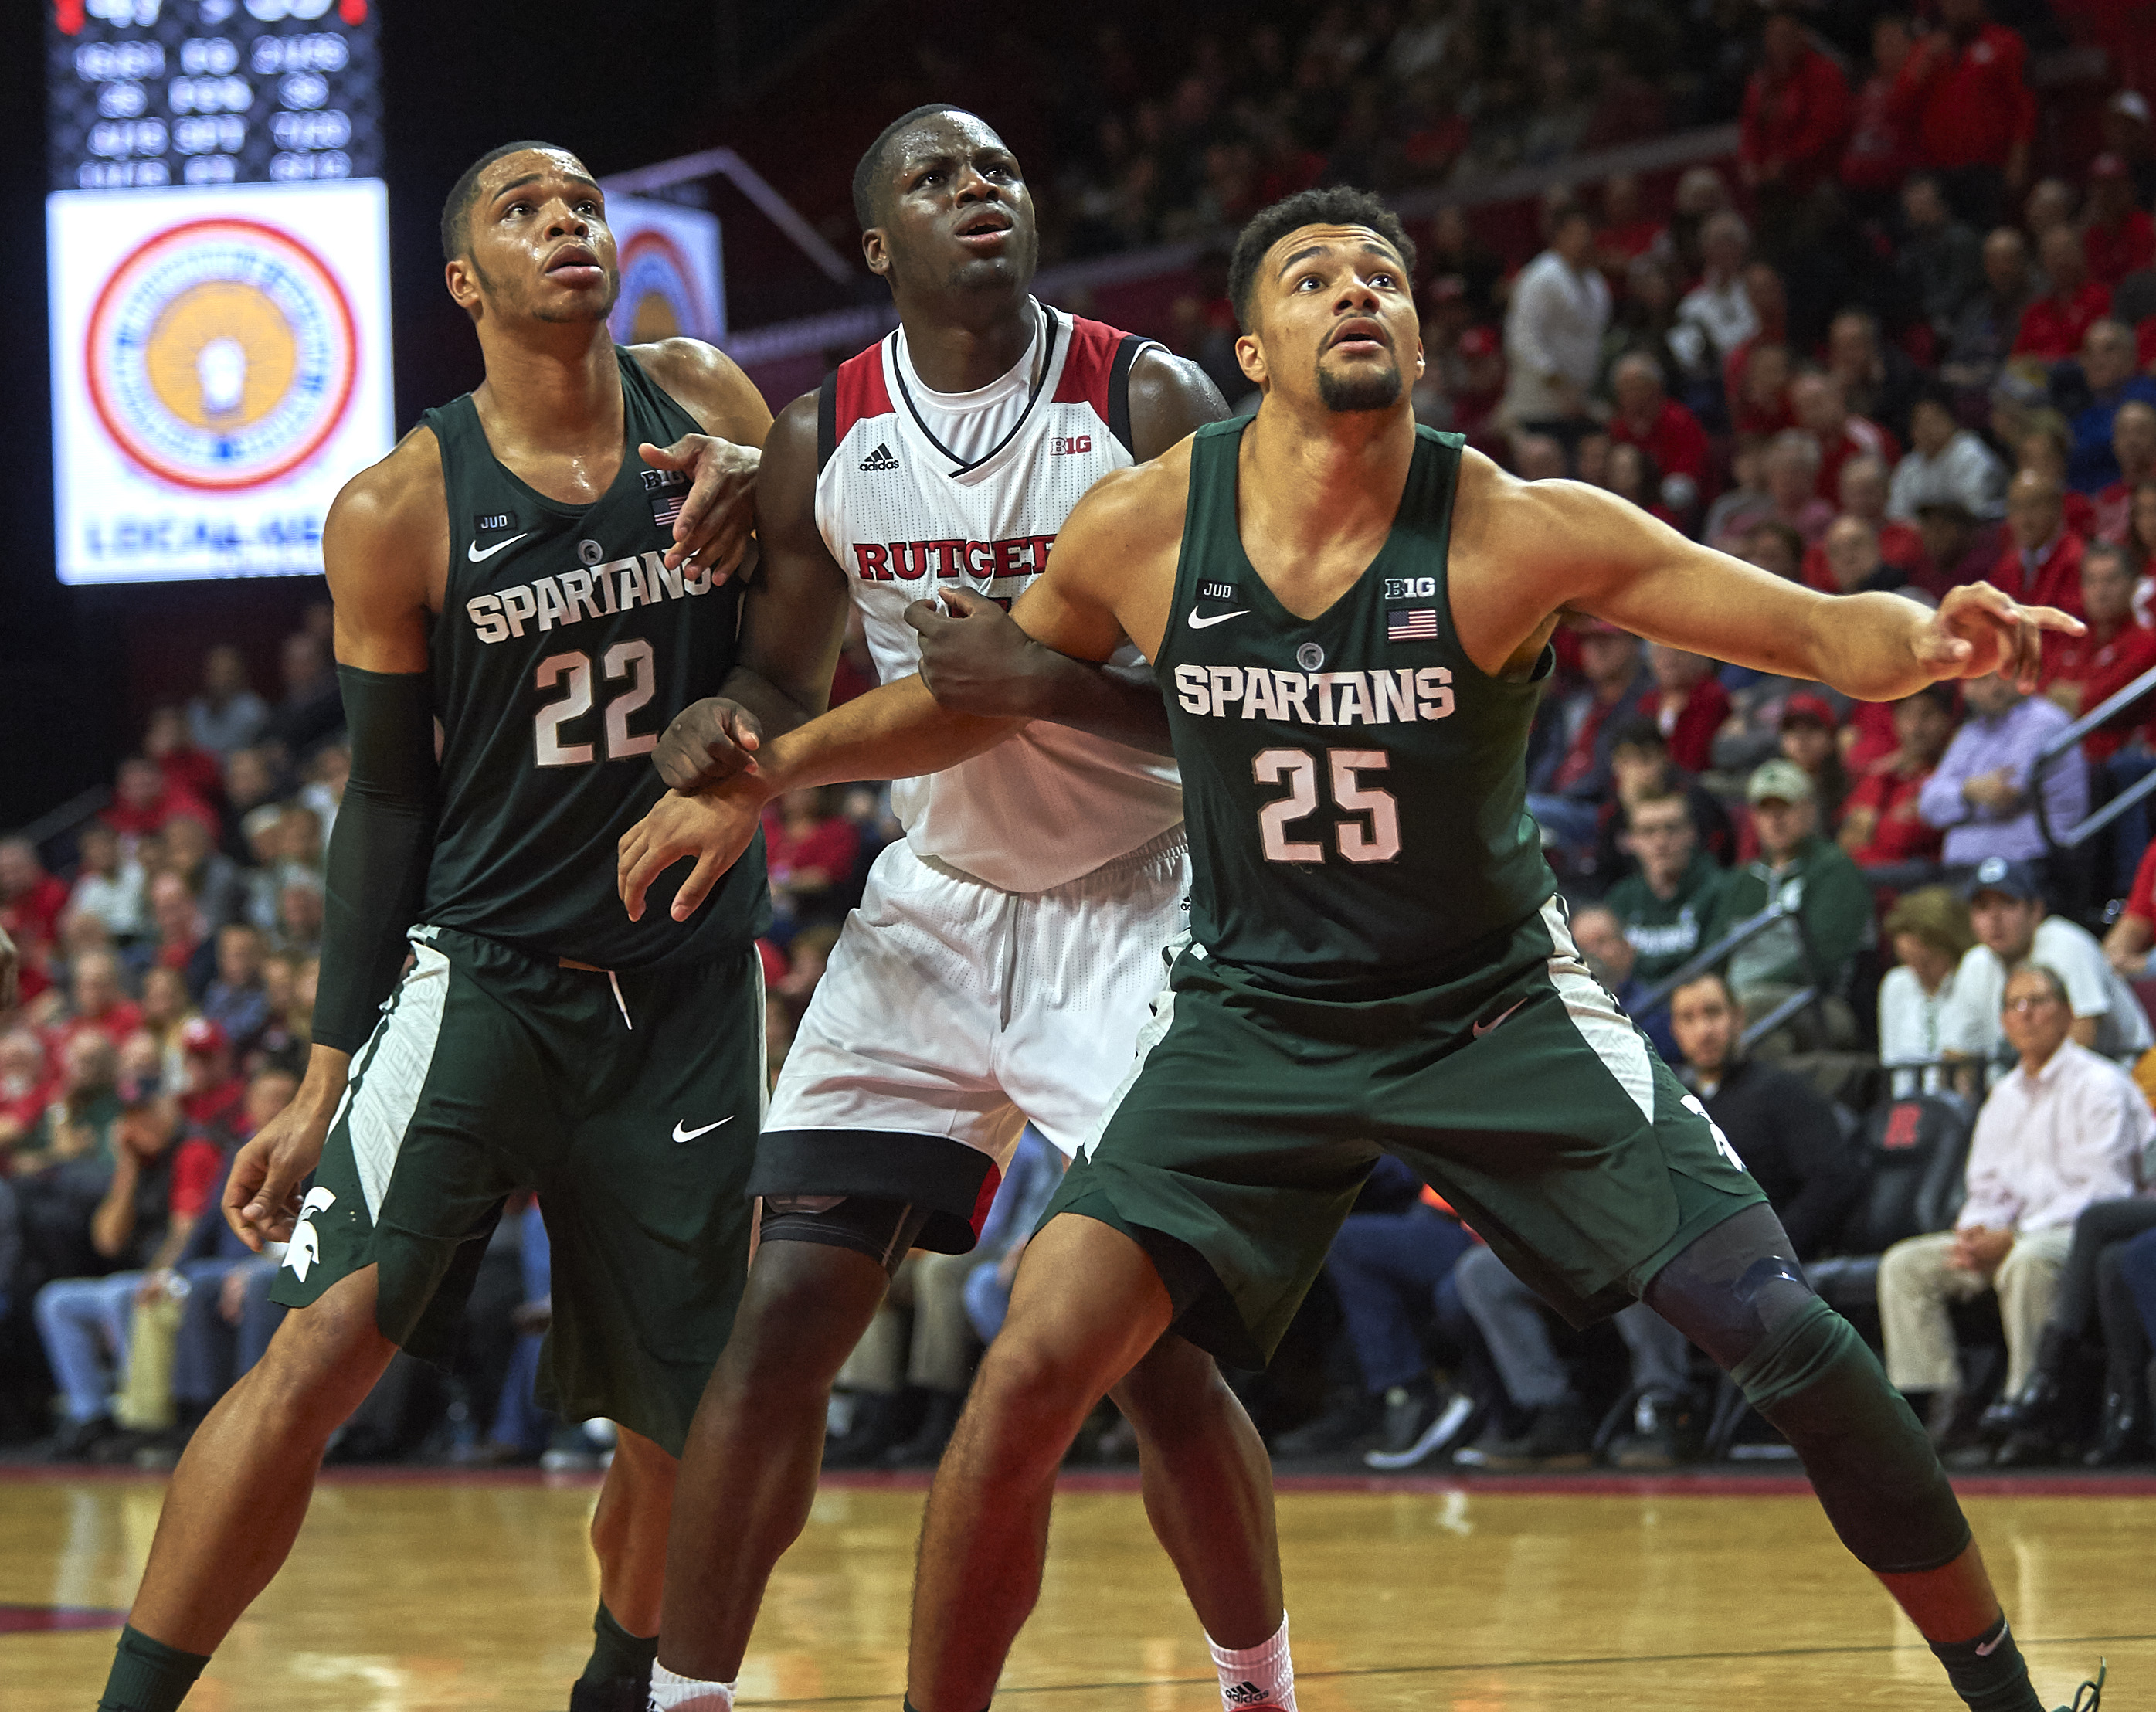 December 6, 2017 - Piscataway, New Jersey, U.S. - Michigan State's forward Kenny Goins (25) blocks out Rutgers forward Eugene Omoruyi (11) in the second half during NCAA basketball action between the Michigan State Spartans and the Rutgers Scarlet Knights at Rutgers Athletic Center in Piscataway, New Jersey. Michigan State defeated Rutgers 62-52. Duncan Williams/CSM(Credit Image: © Duncan Williams/CSM via ZUMA Wire)